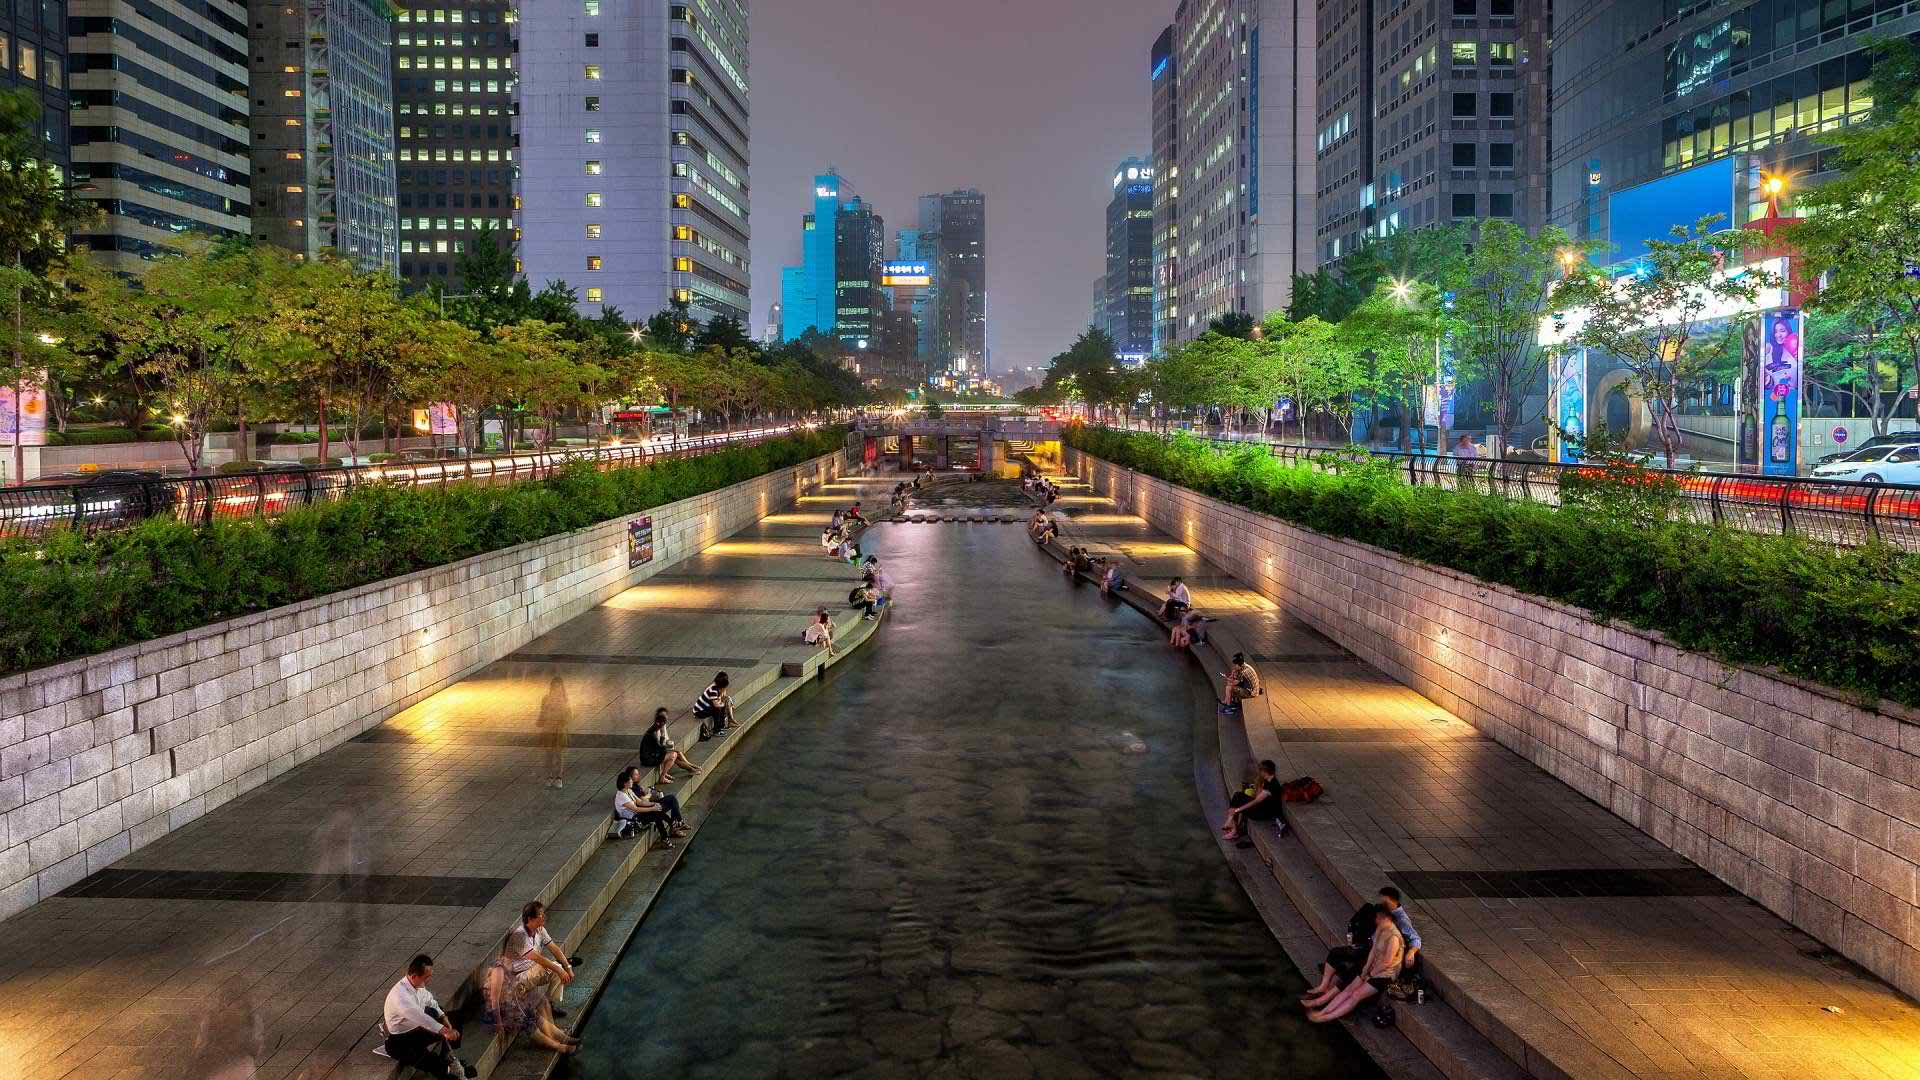 seoul wallpapers - wallpaper cave